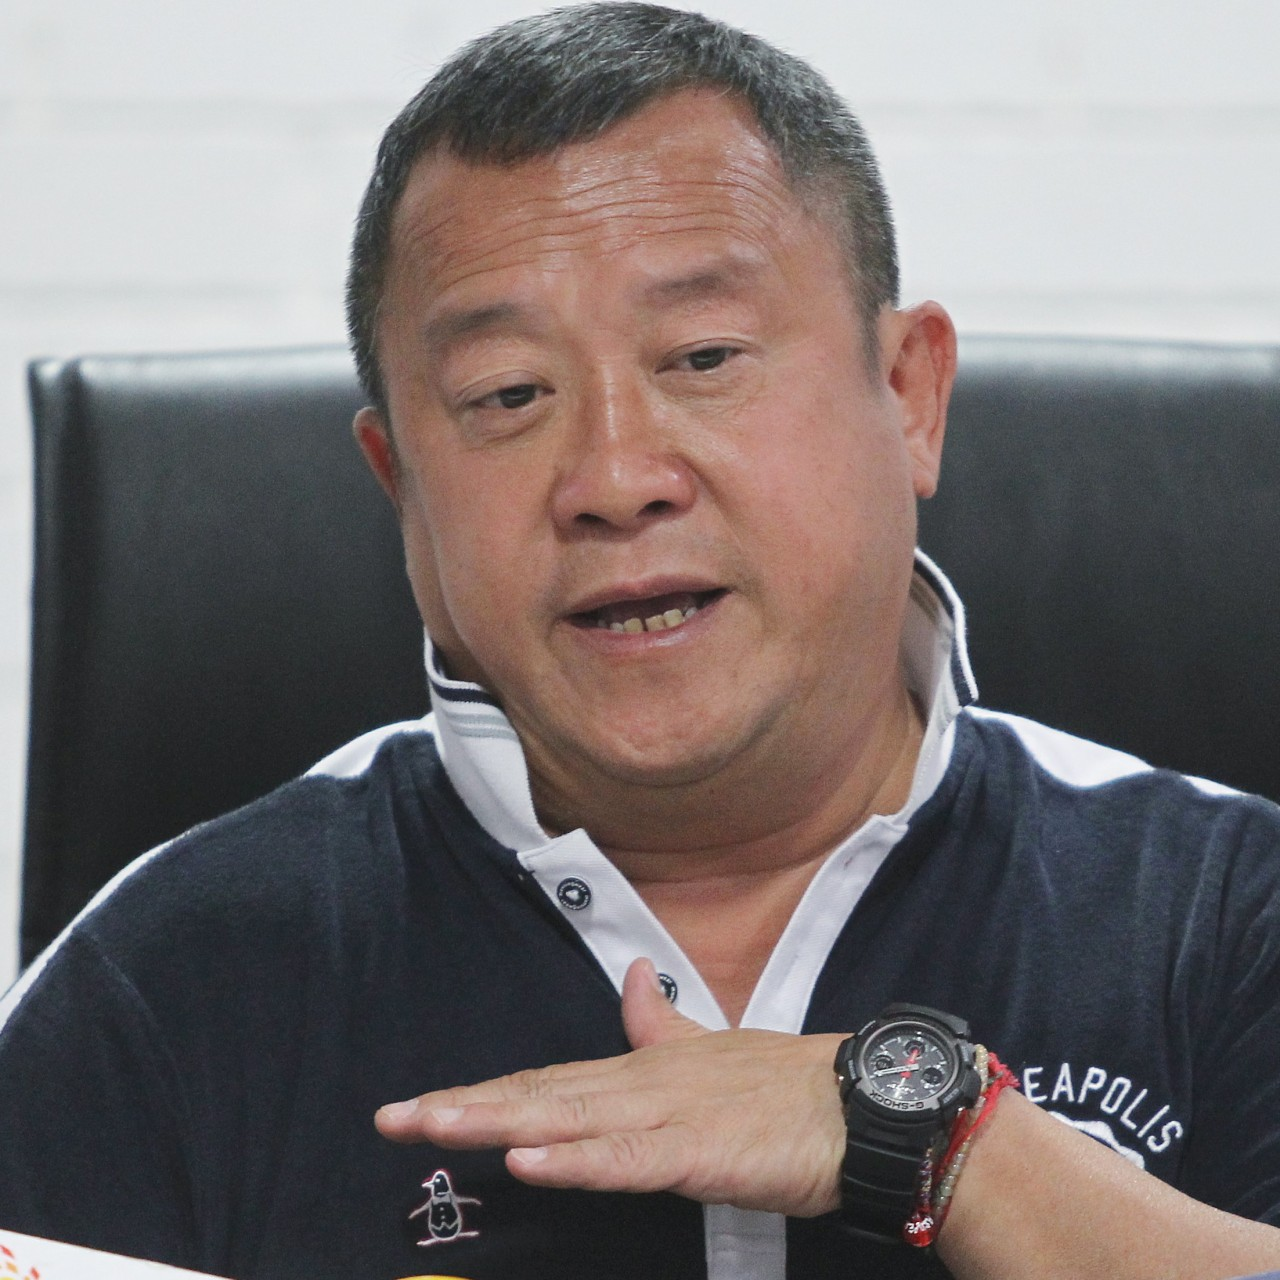 c63040a9b28a Hong Kong actor Eric Tsang Chi-wai denies he was drink-driving when he  crashed in Japan on Christmas Day | South China Morning Post